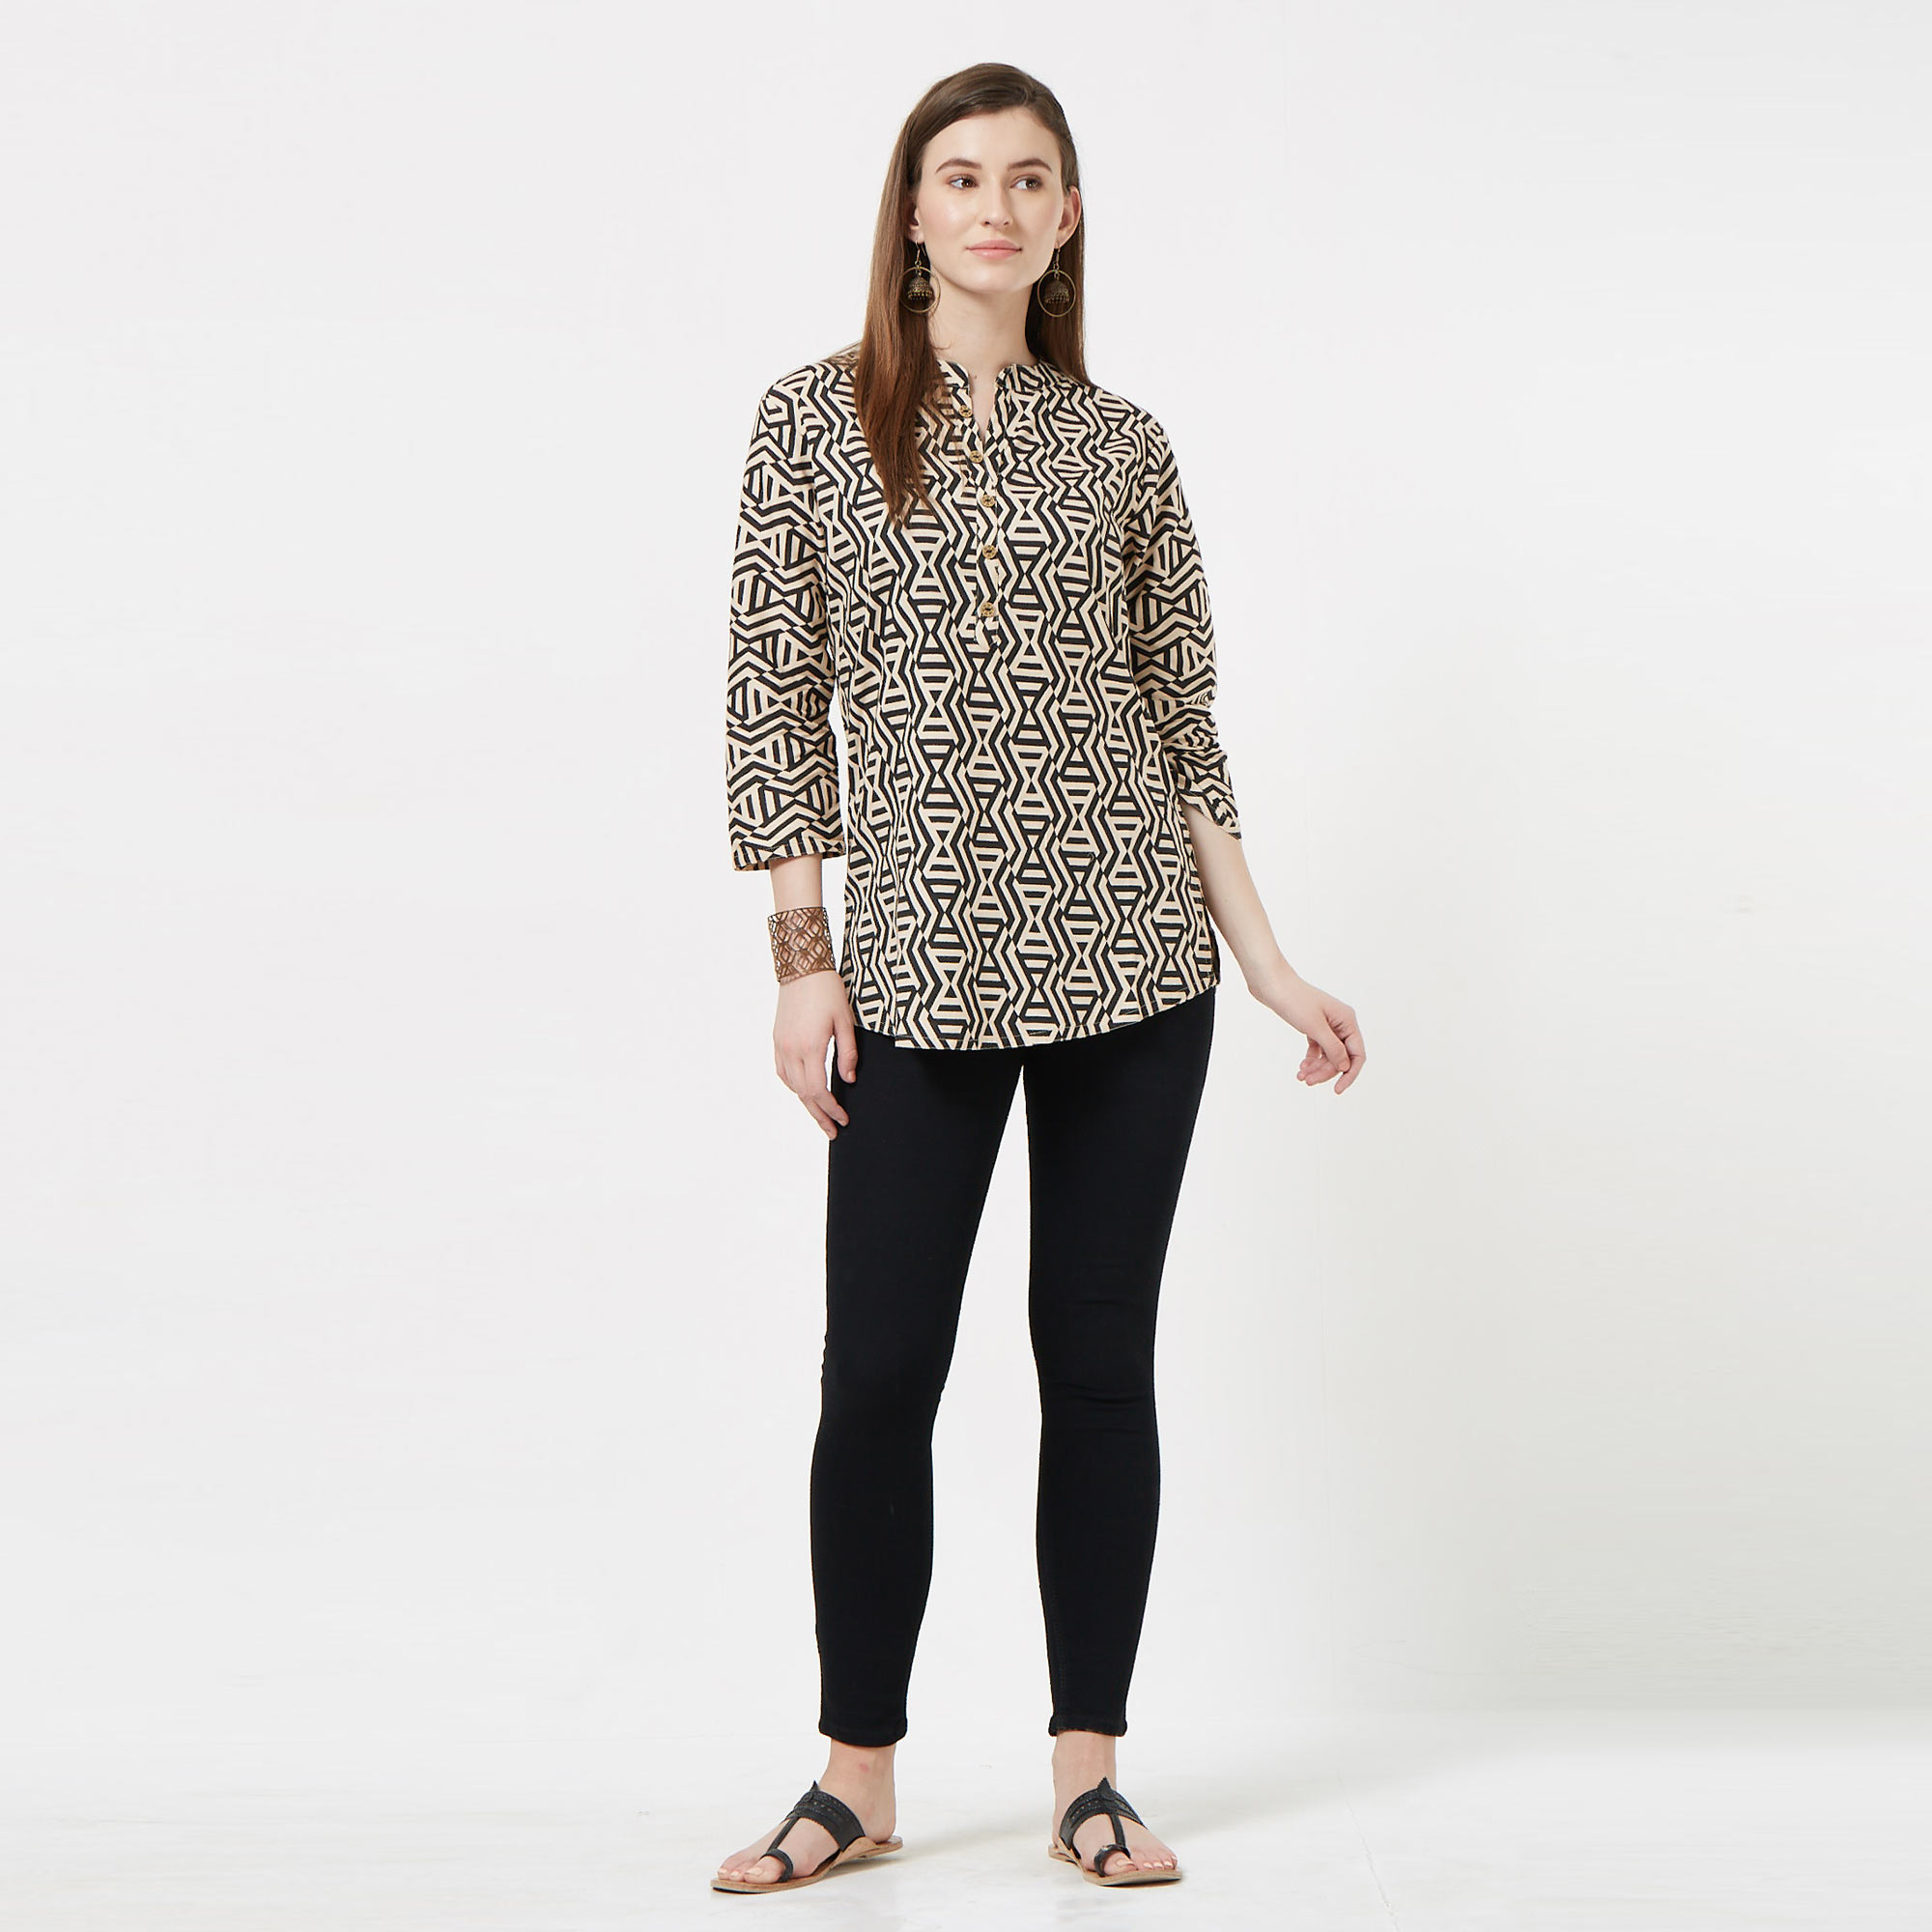 Trendy Black-White Colored Casual Printed Cotton top